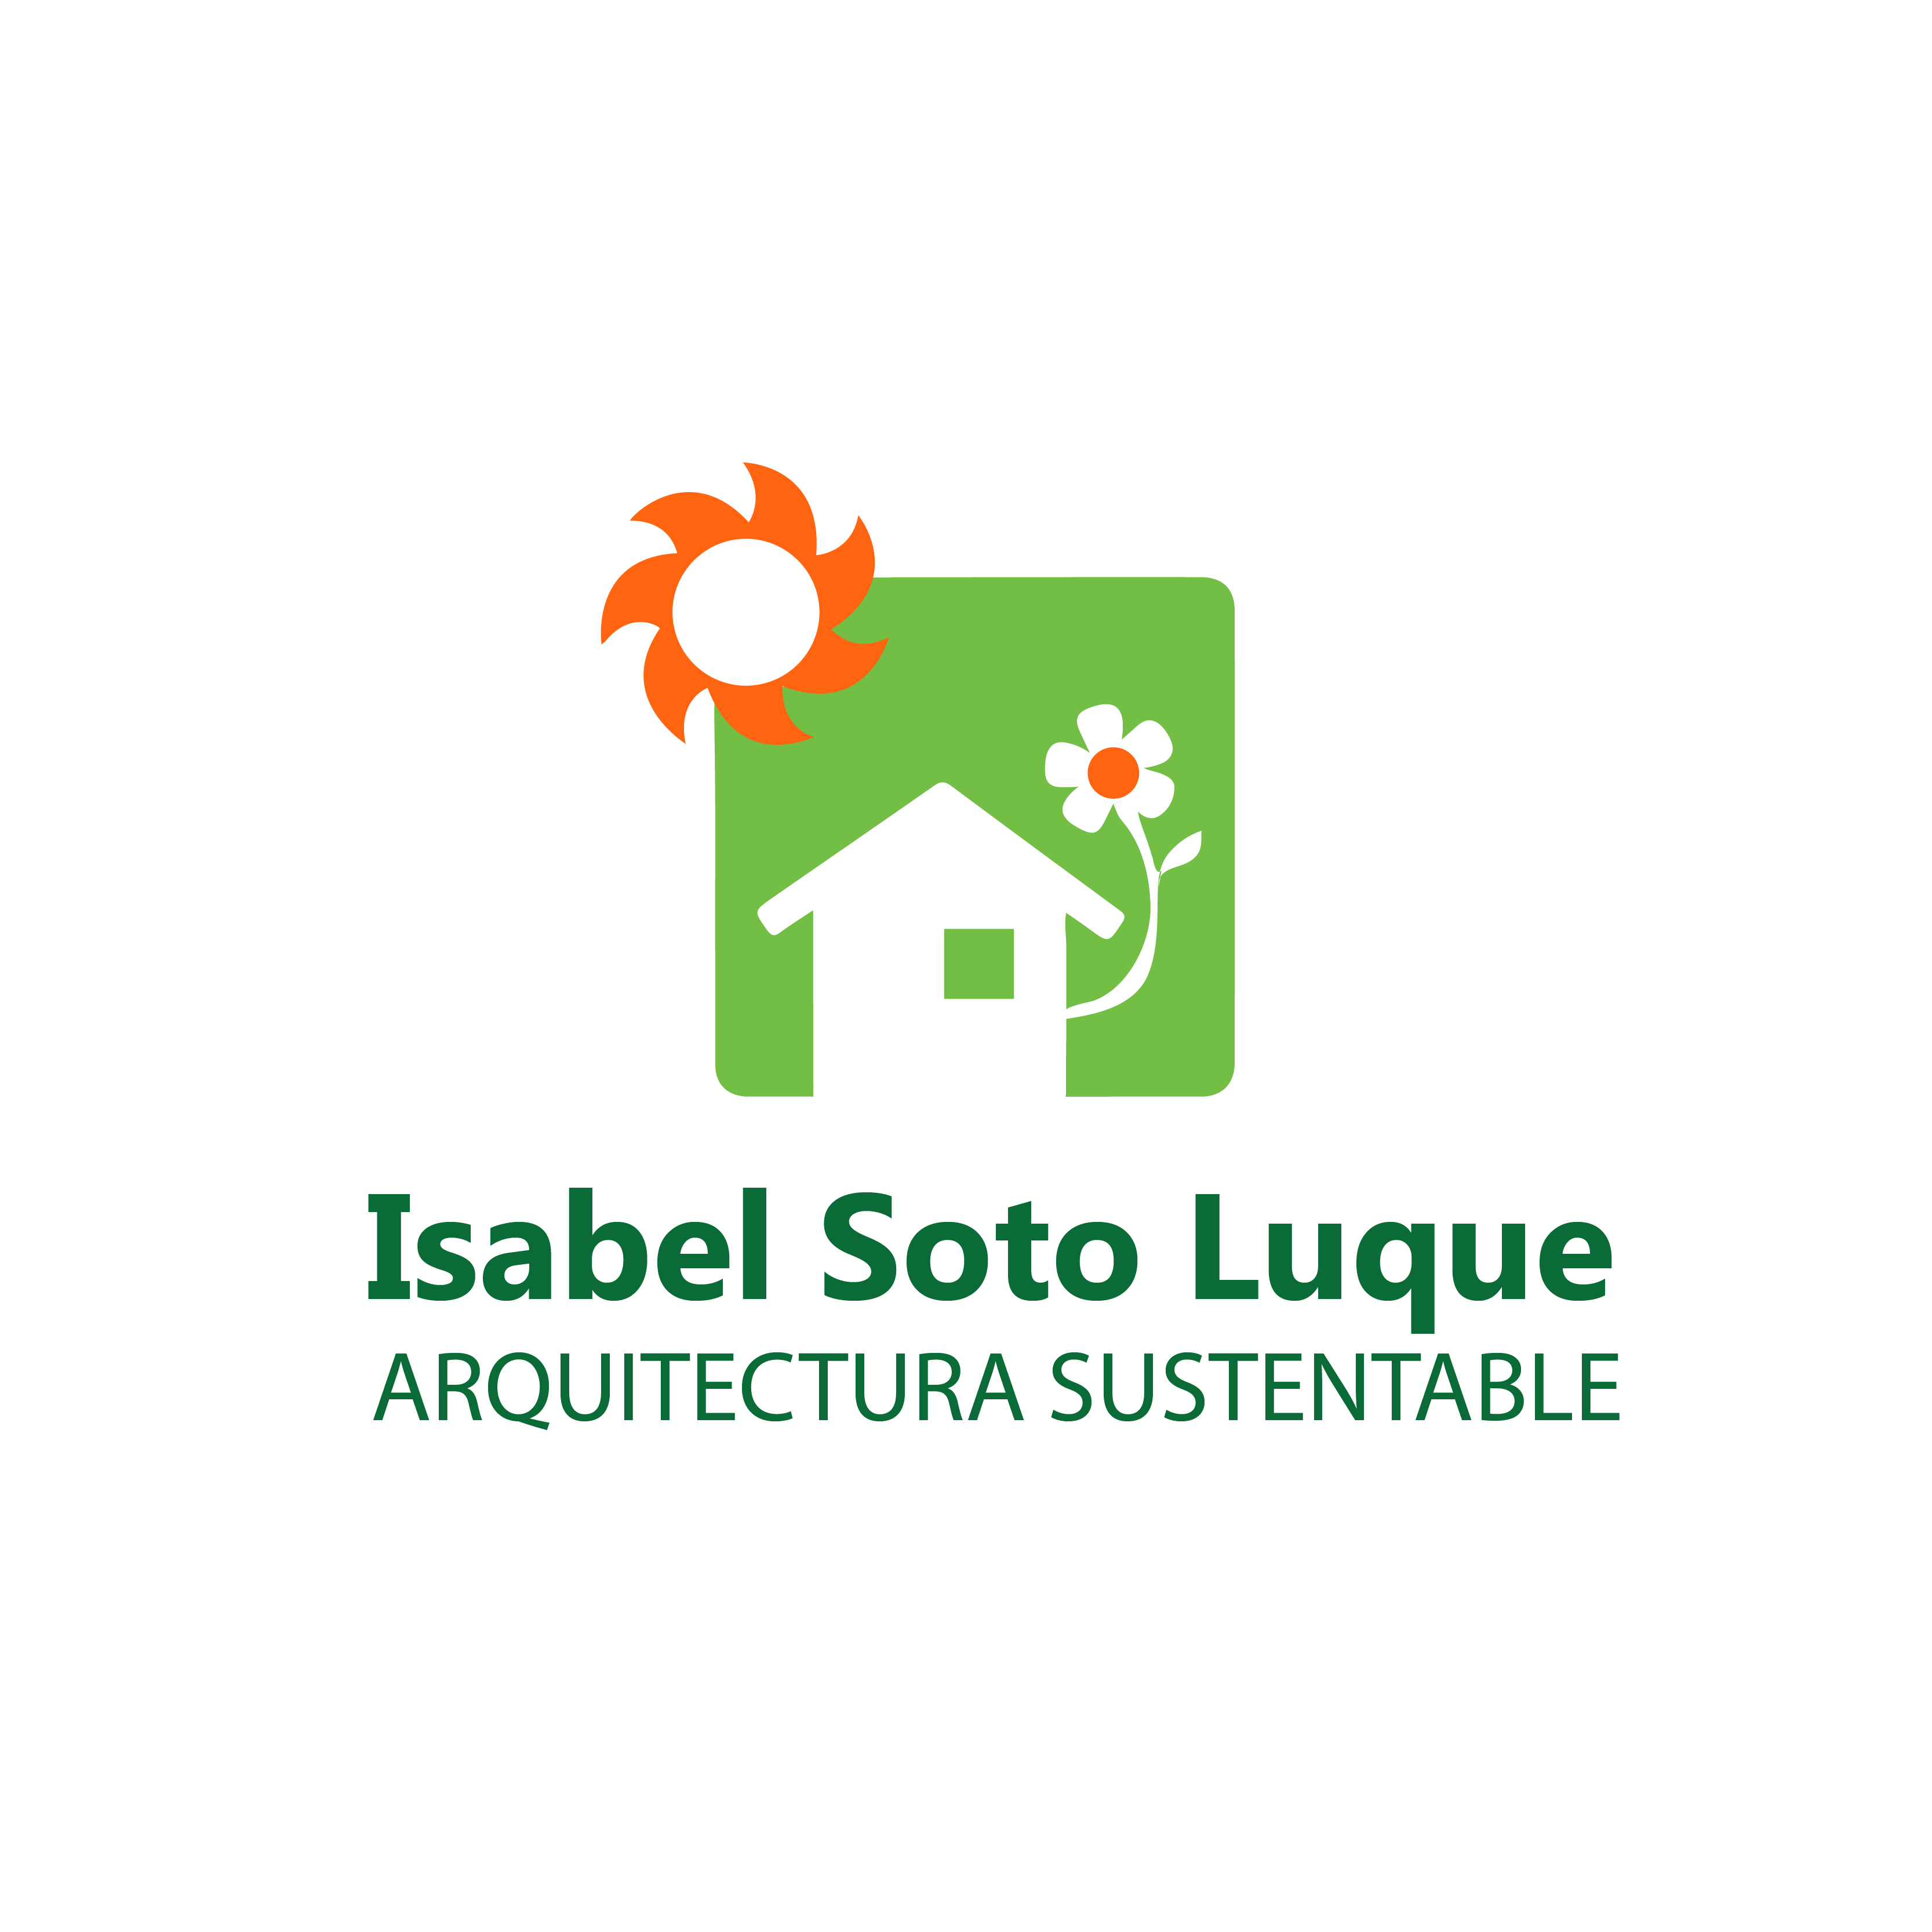 Isabel soto luque logo final-01